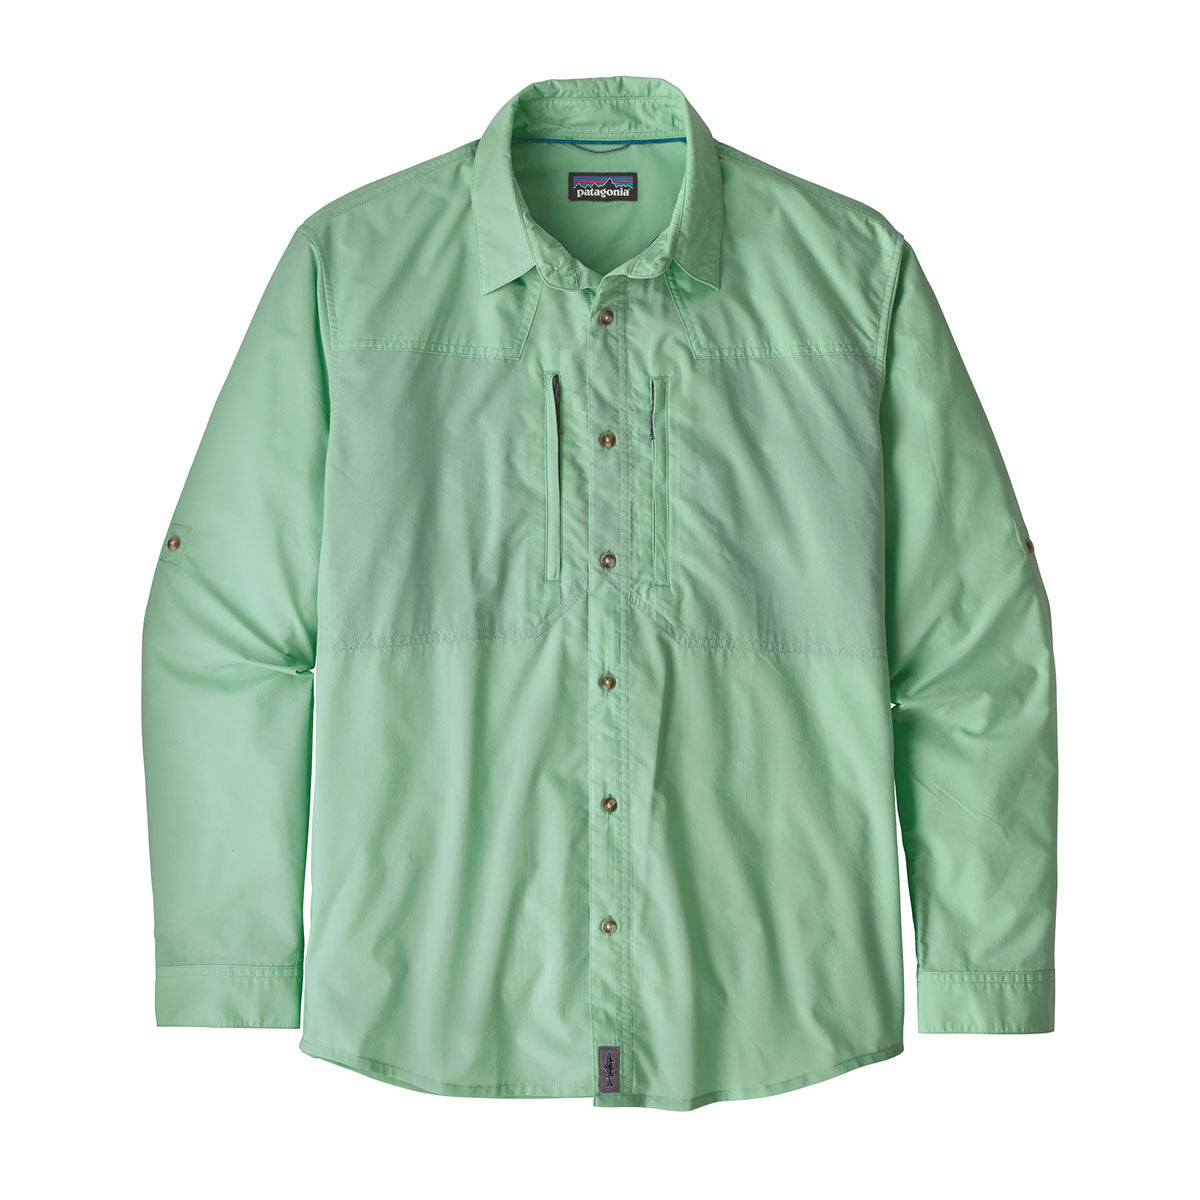 Patagonia Men's Sun Stretch Shirt